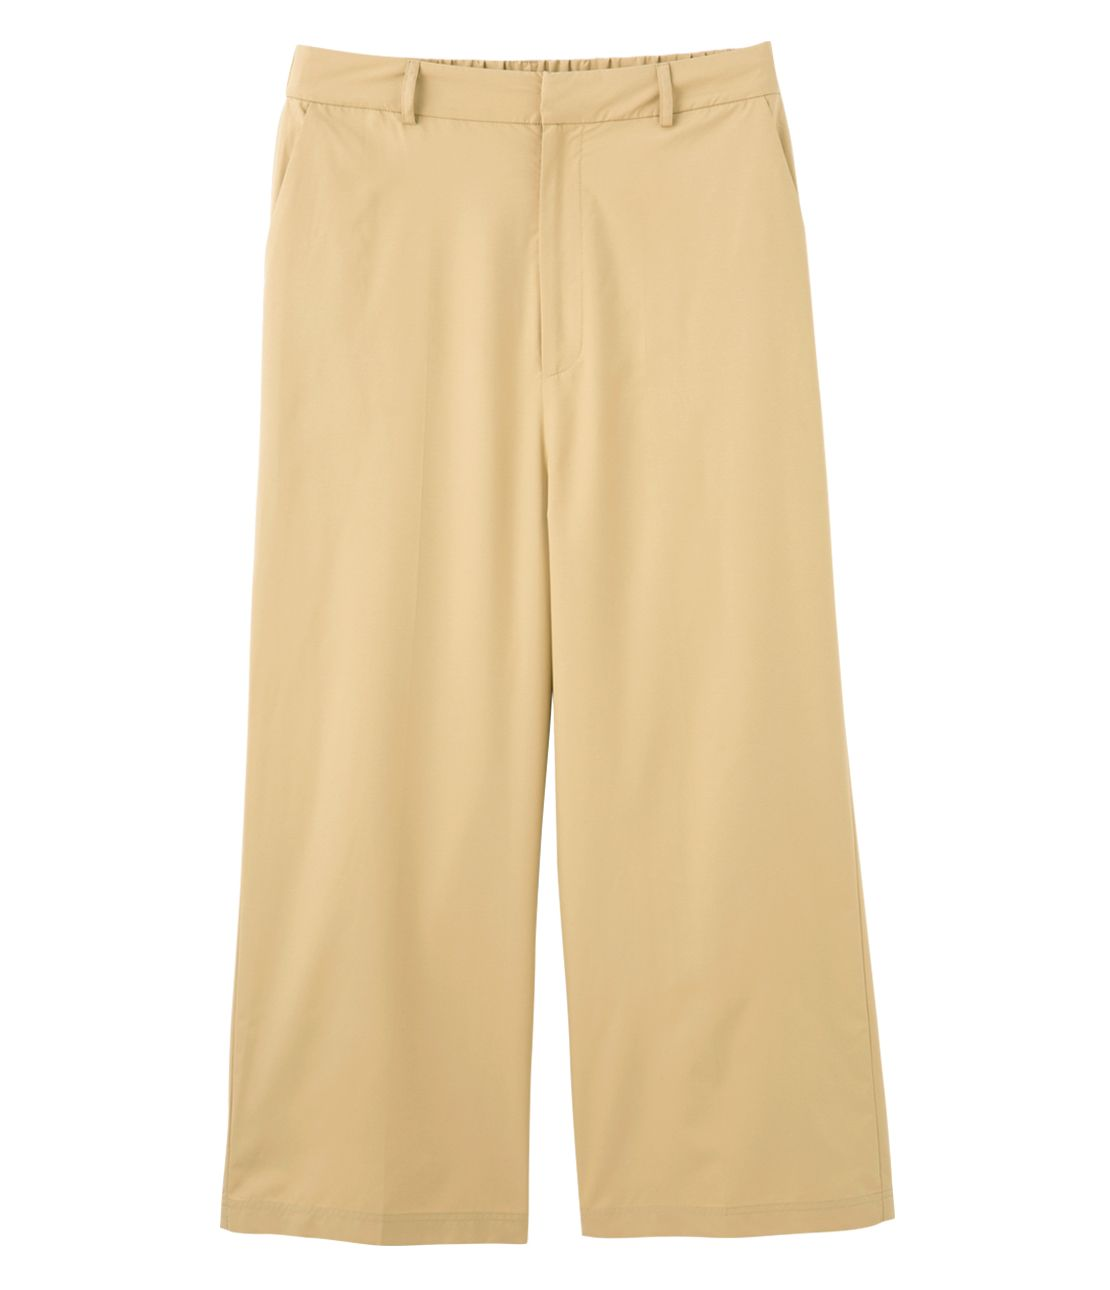 Wide ankle pants to repel water